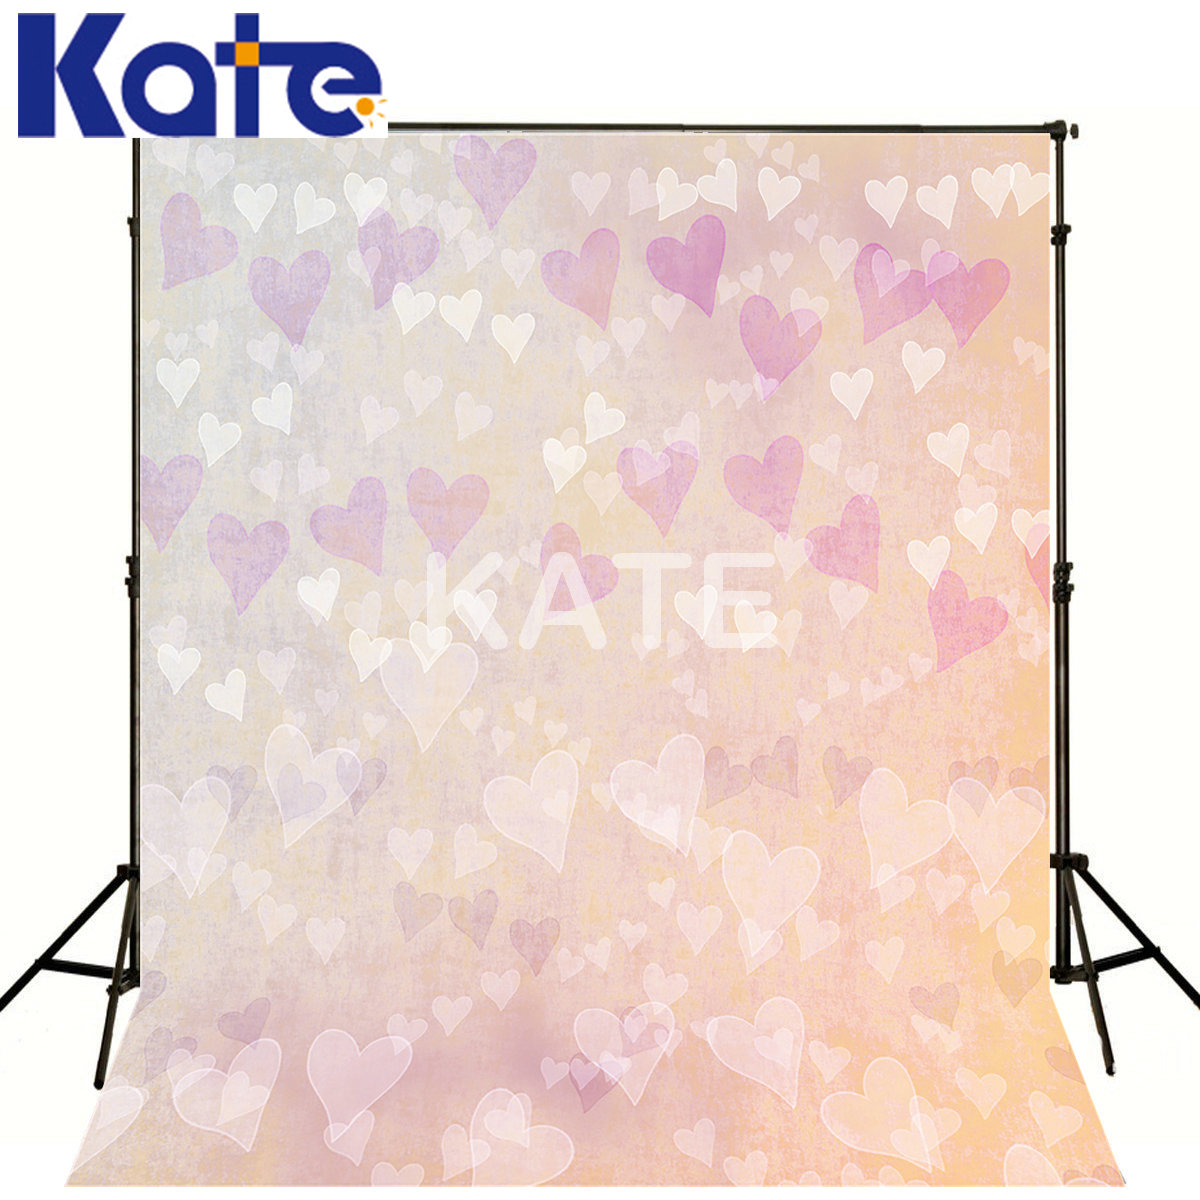 Green Screen Colorful Love For New Baby Kate Background Backdrop Backgrounds For Photo Studio